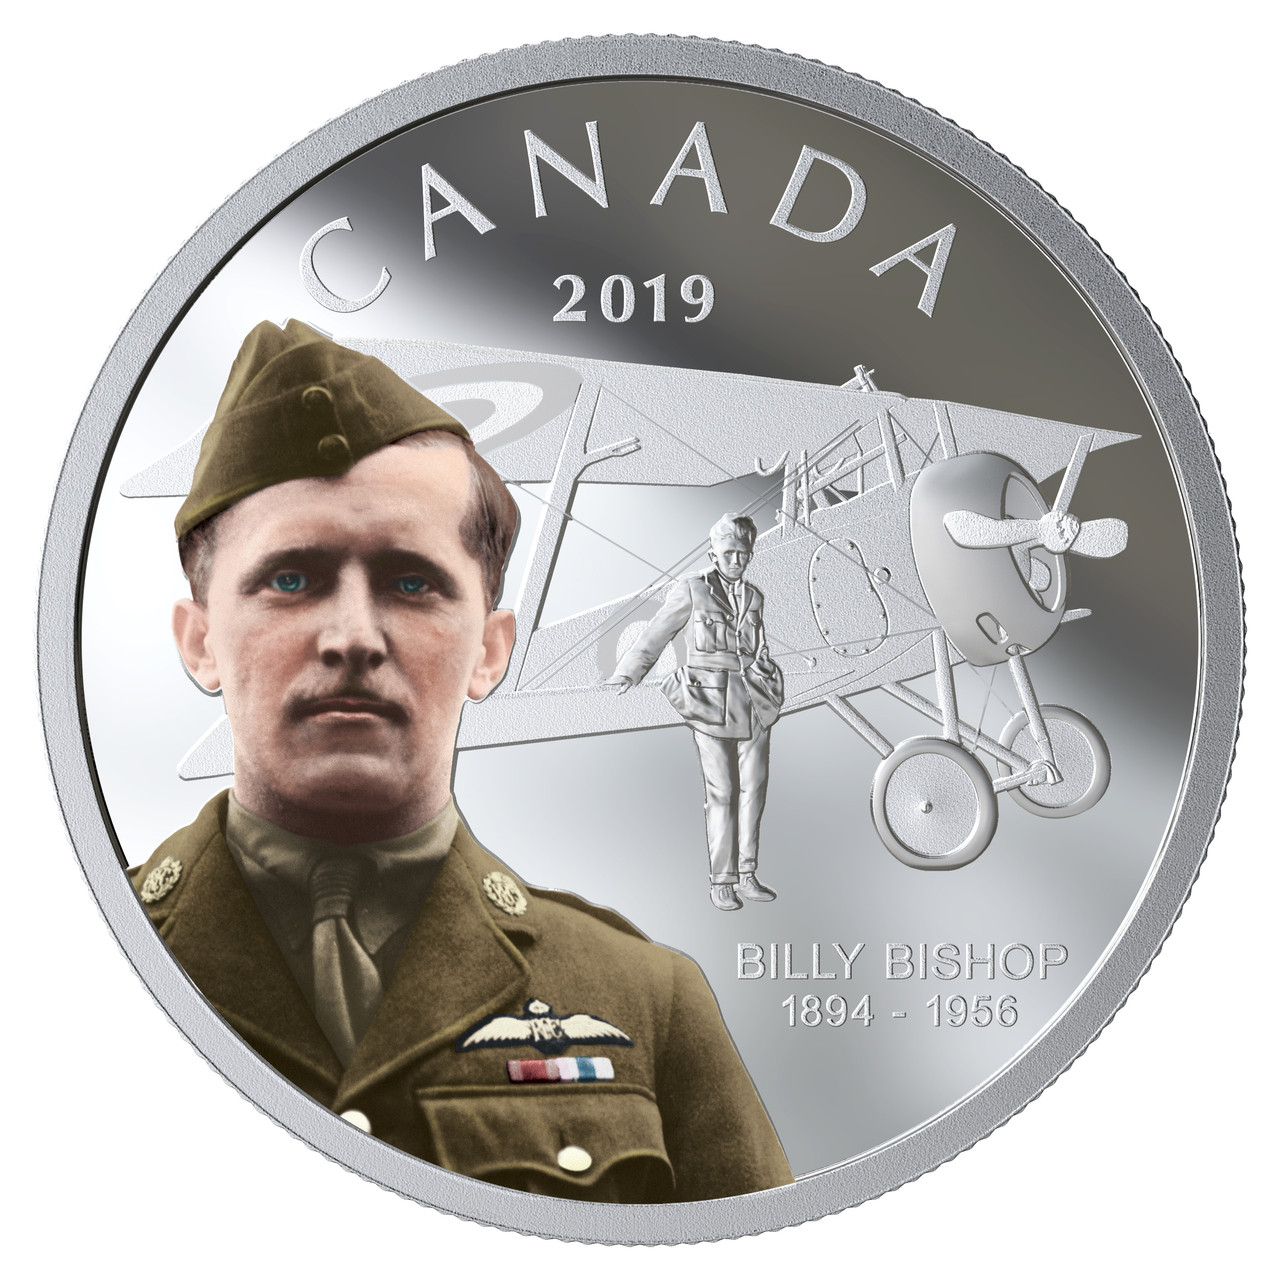 2019 $20 FINE SILVER COIN 125TH ANNIVERSARY OF THE BIRTH OF BILLY BISHOP